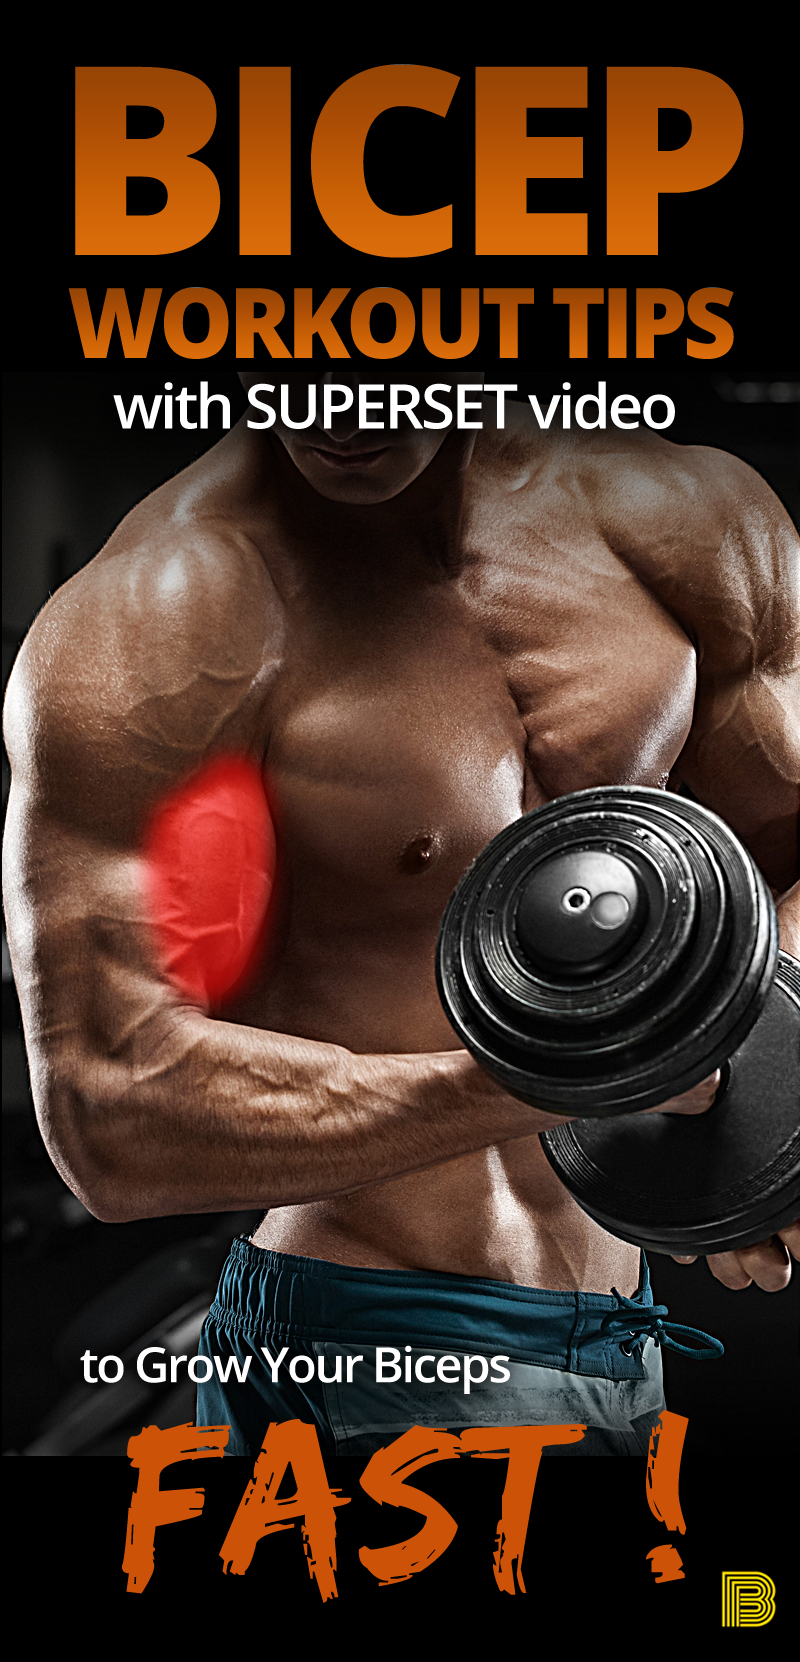 Best Bicep Workout Tips with Superset Video